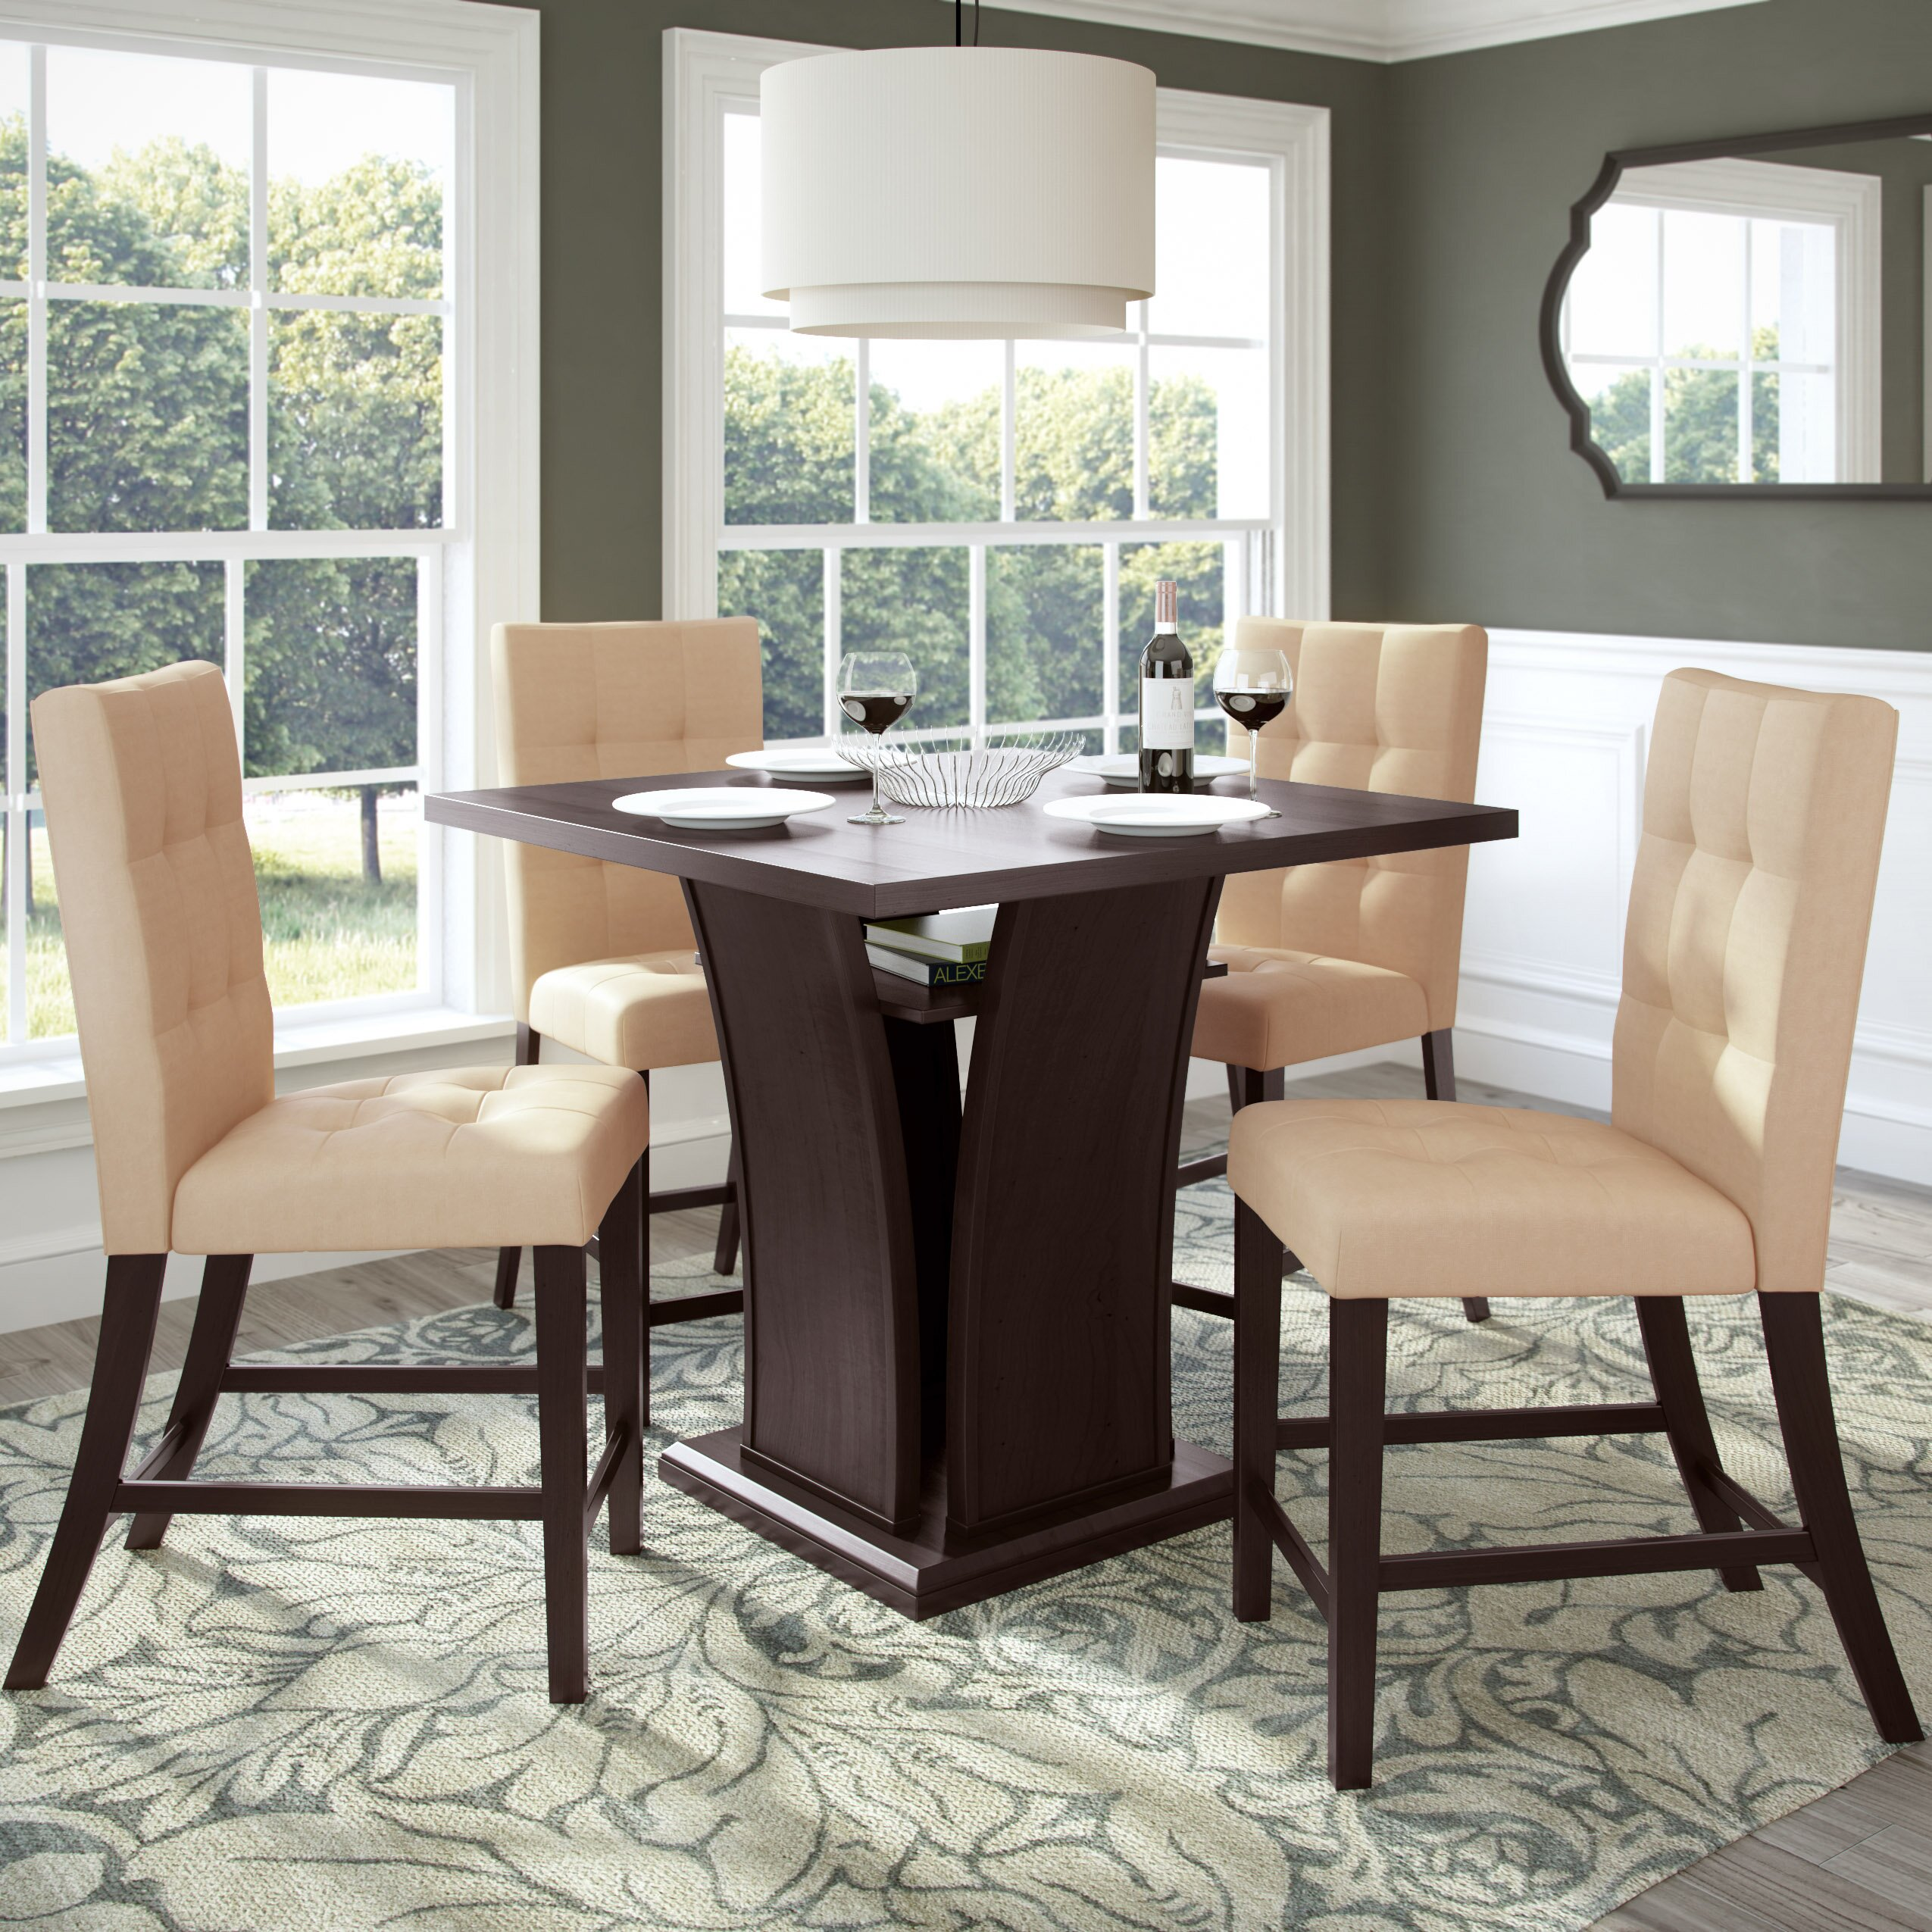 Counter Height Dining Sets 5 Piece : ... Studio Troyer 5 Piece Counter Height Dining Set & Reviews Wayfair